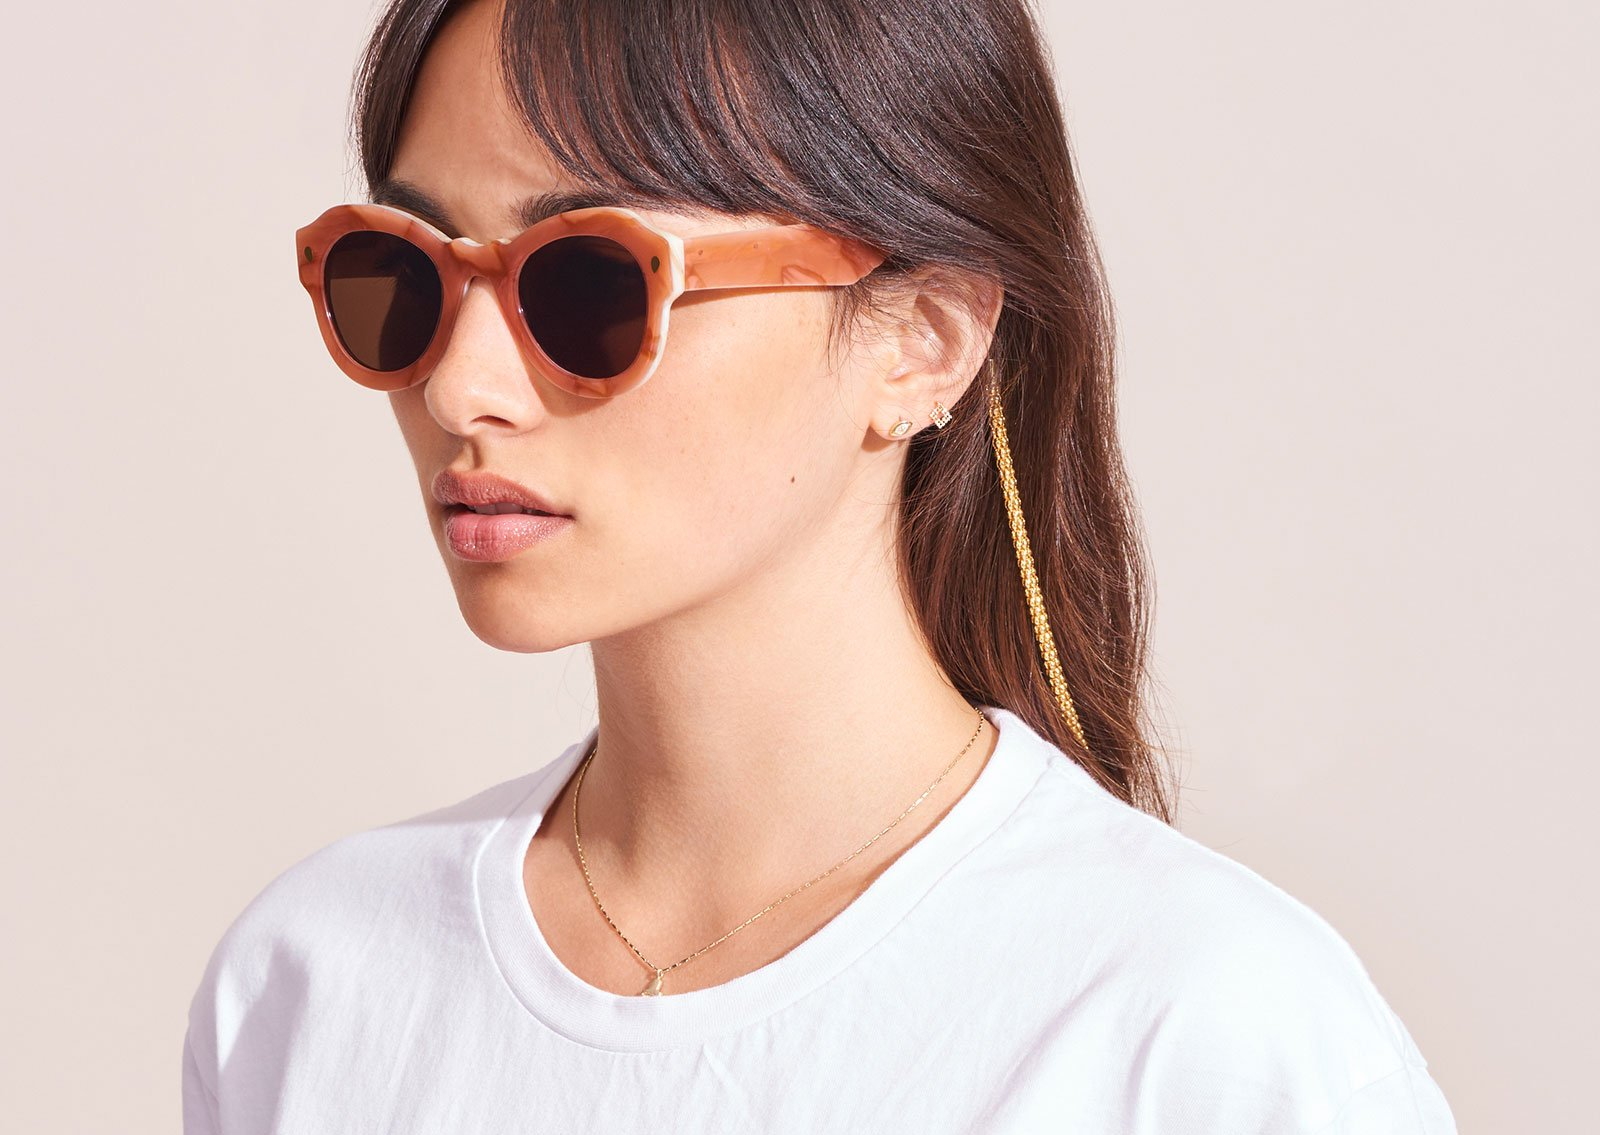 Fly Away sunglasses by Lucy Folk